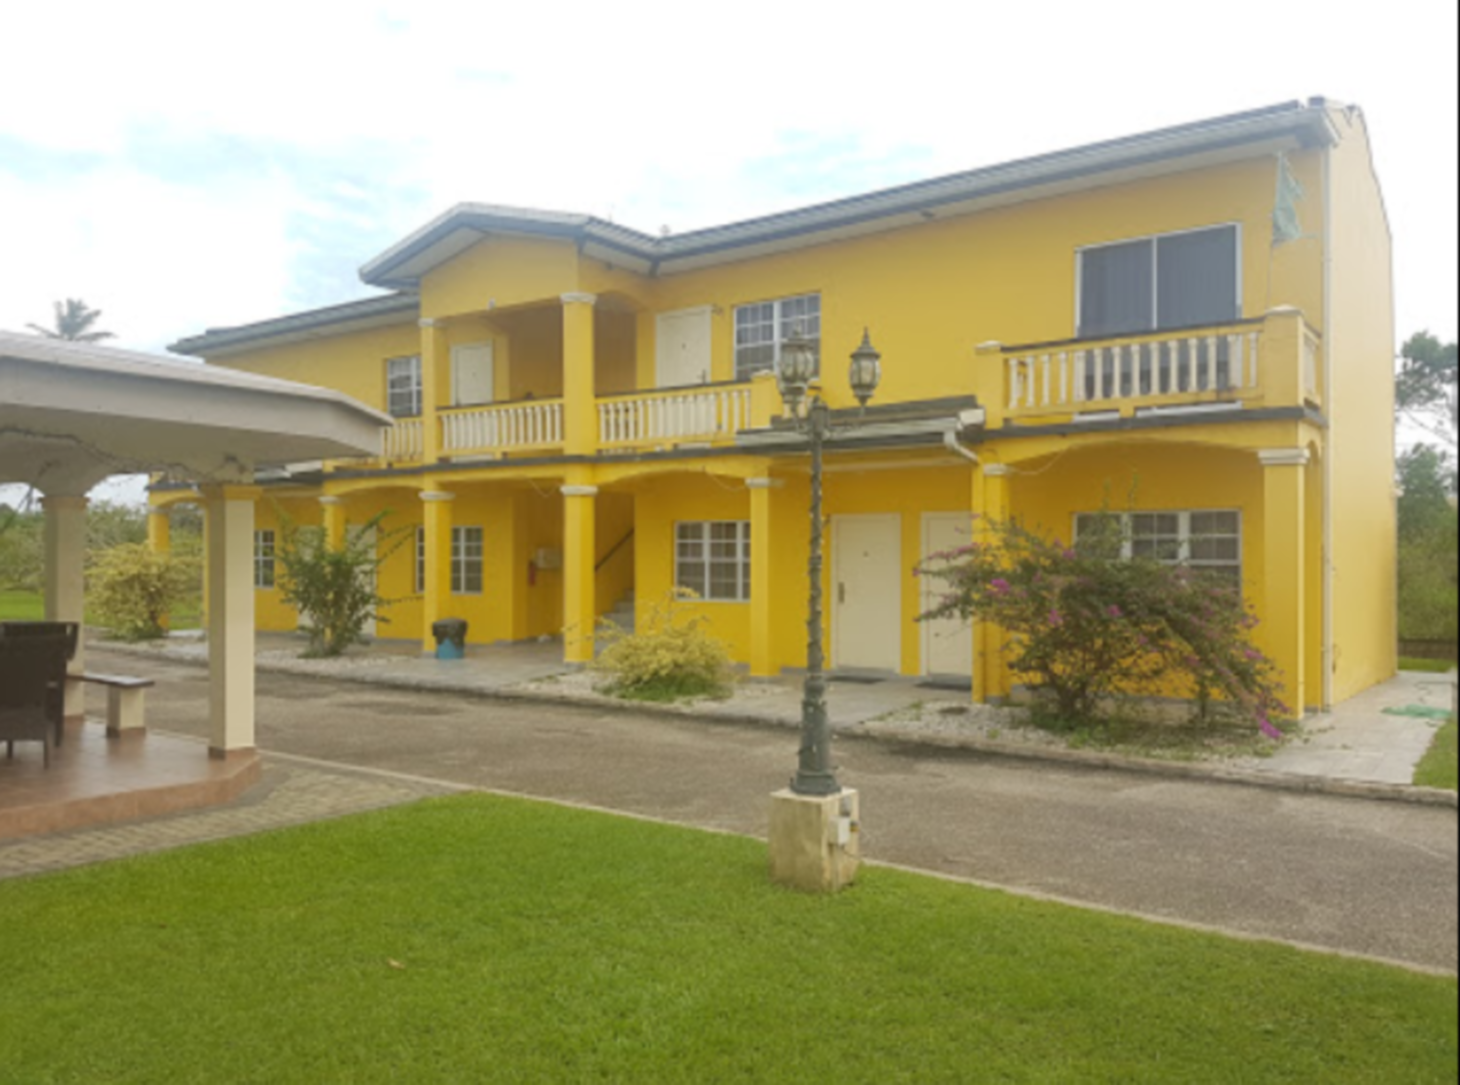 A close up of a street in front of a house at Piarco Village Suites.